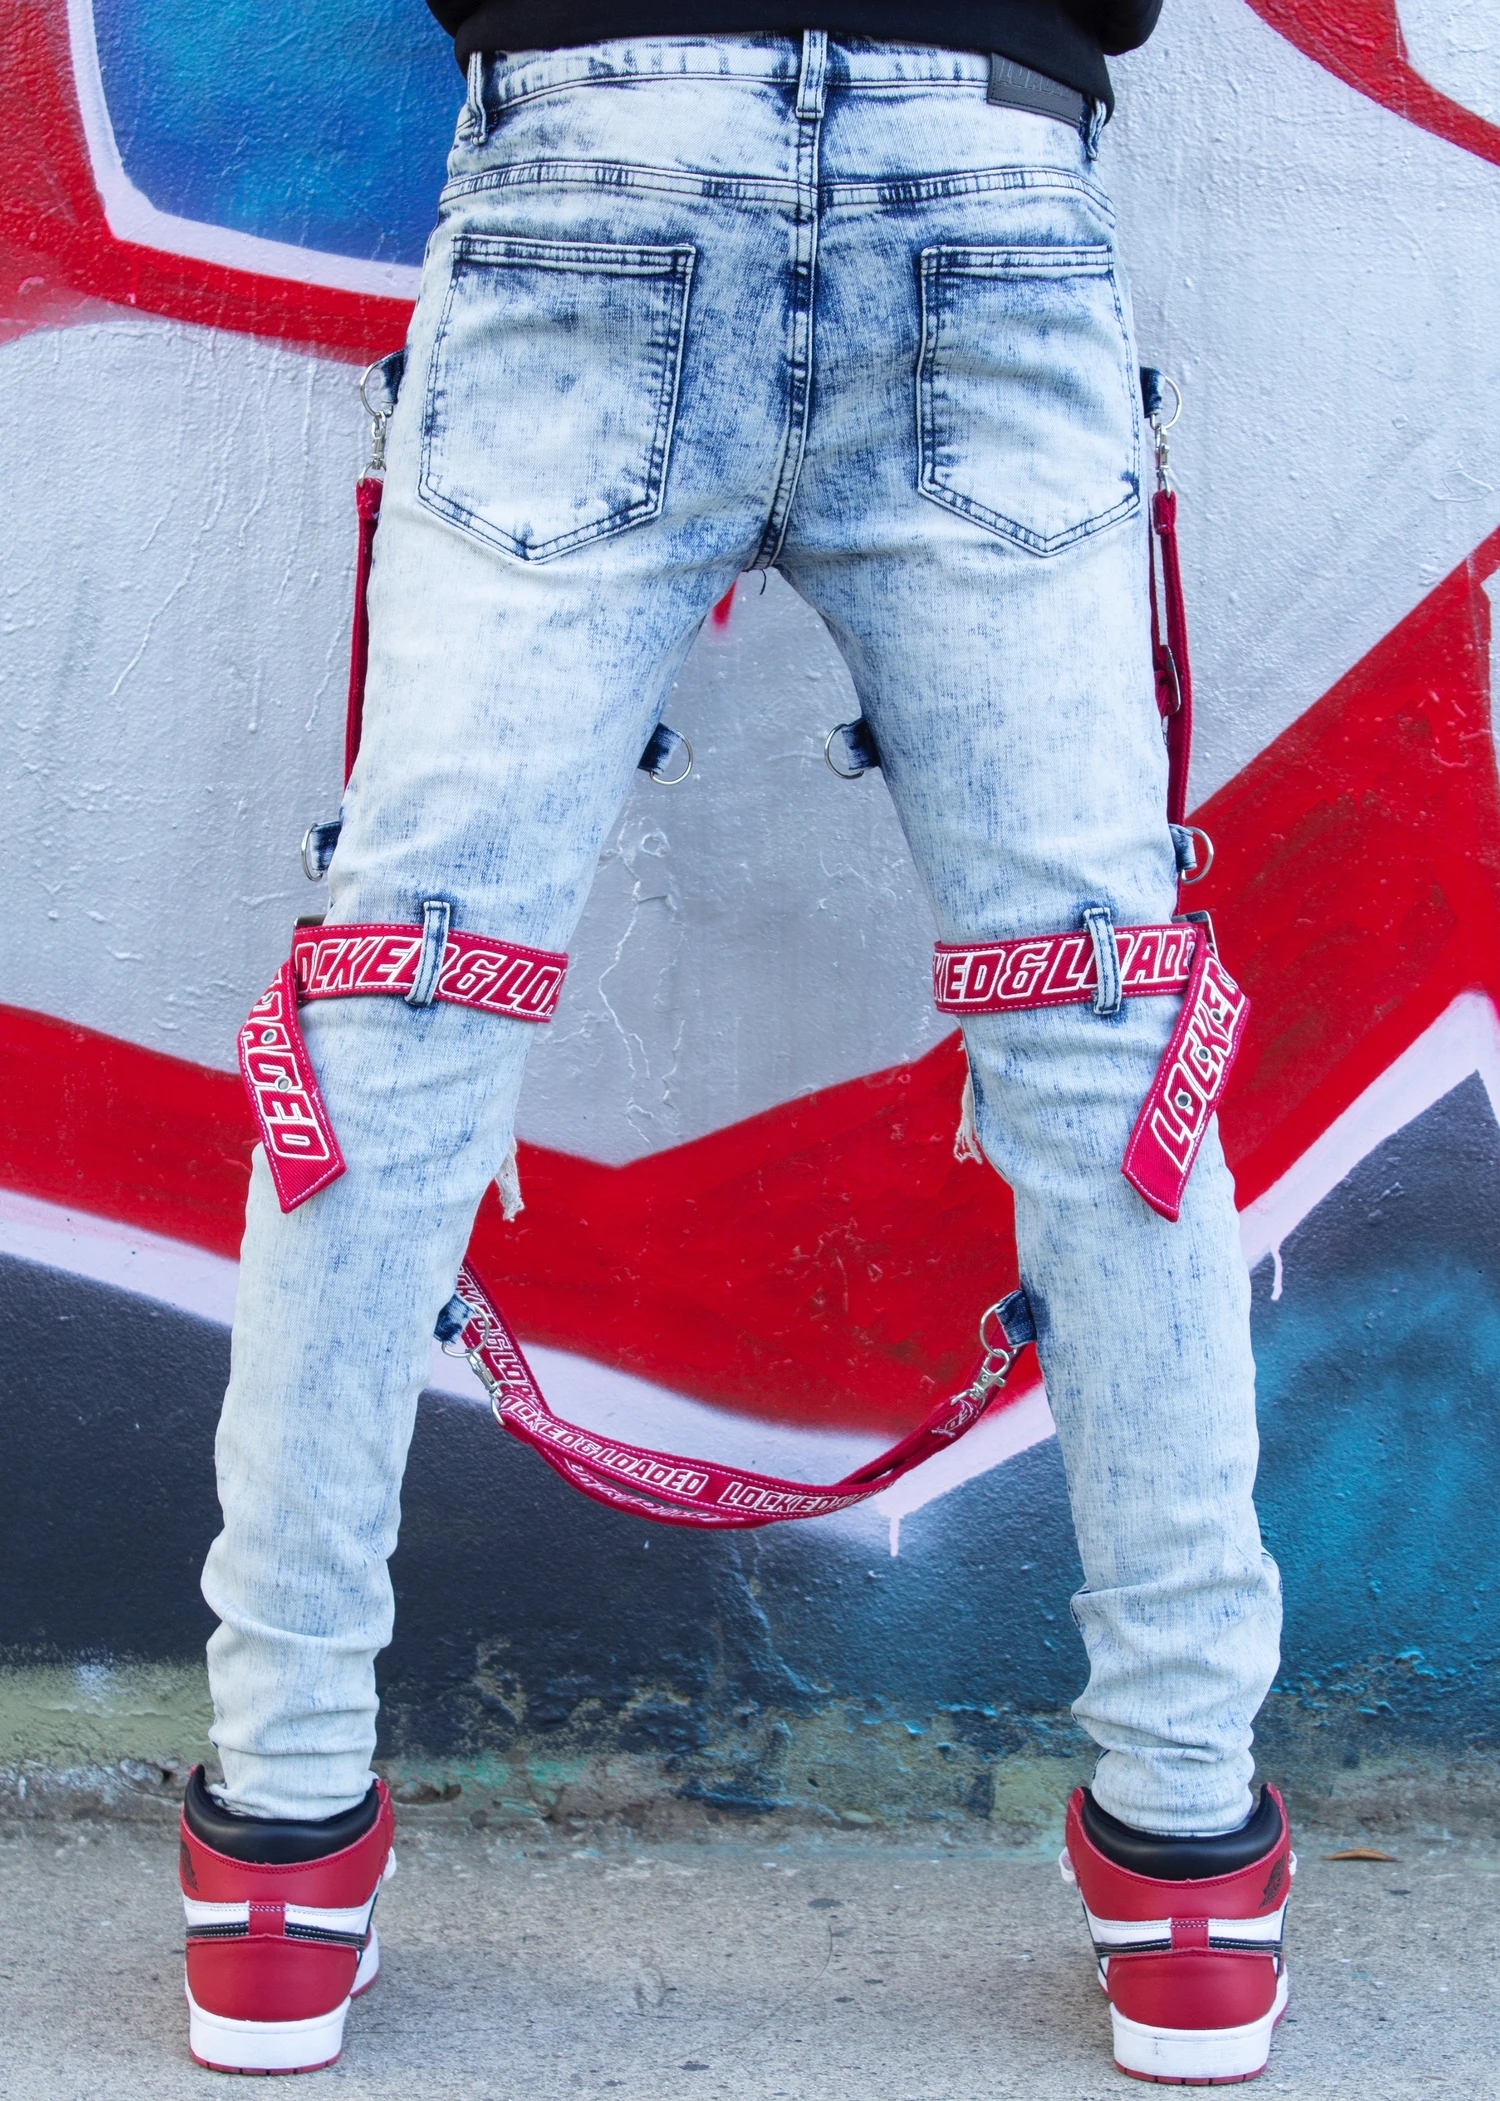 Locked and Loaded Jeans-Belt and Stone-Light Blue and Red